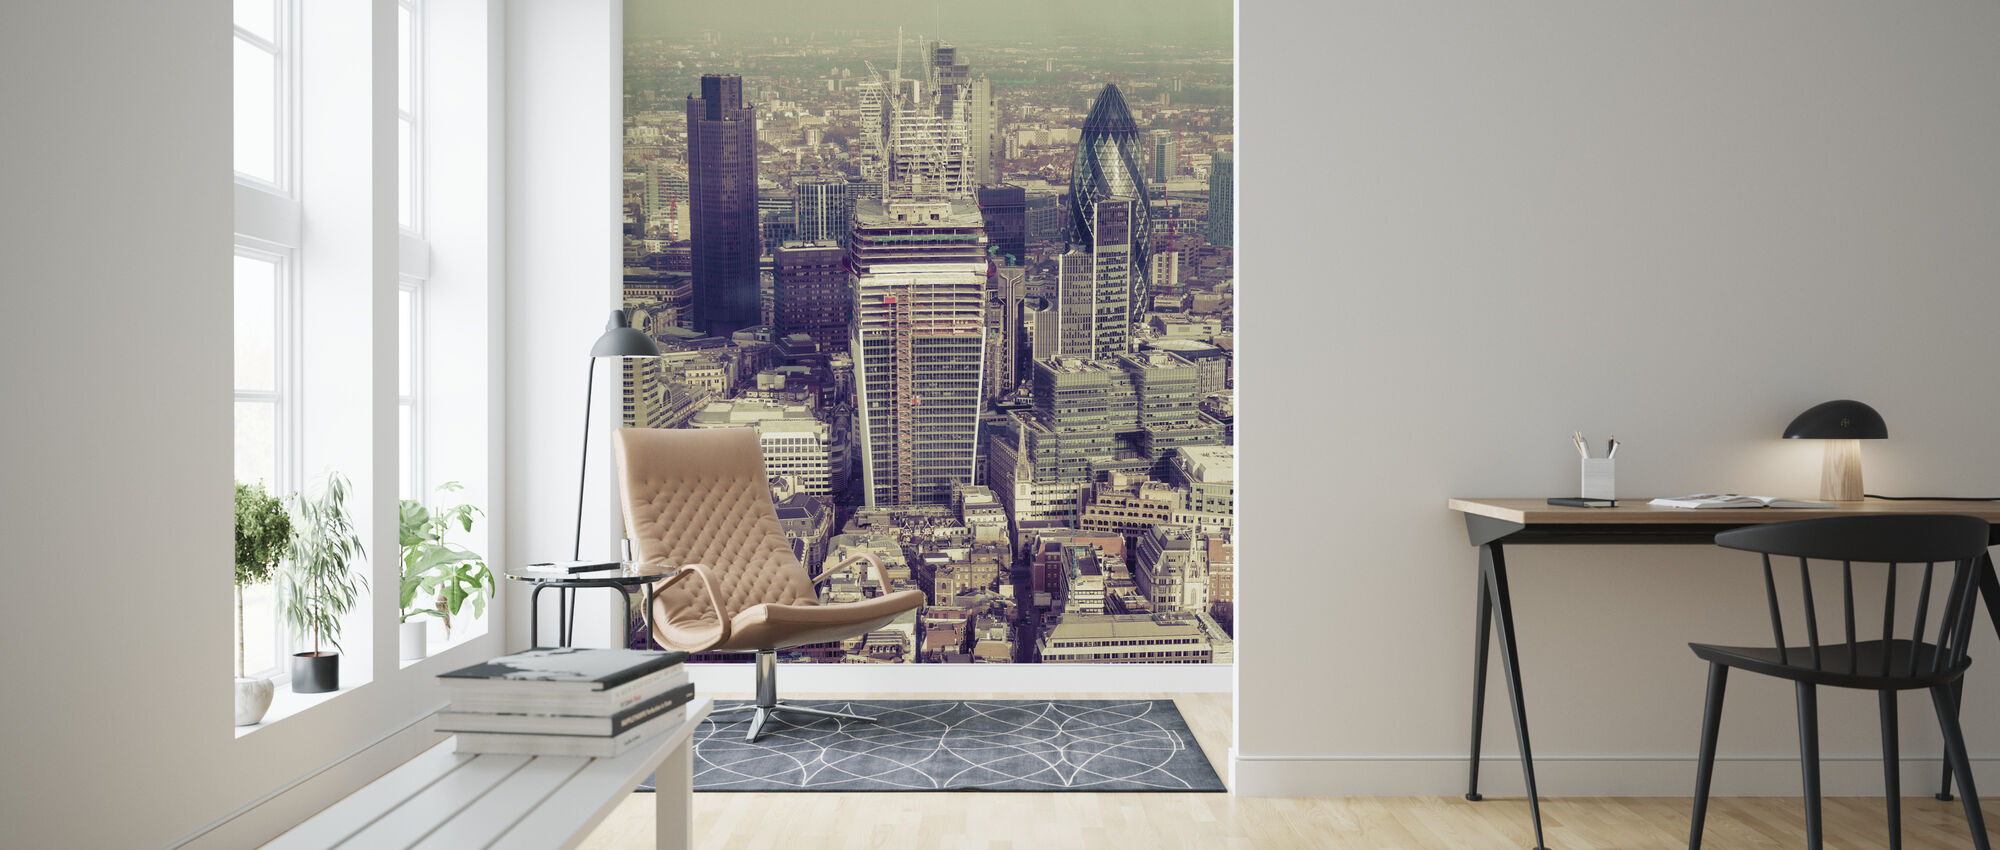 View from the Shard, London - Wallpaper - Living Room